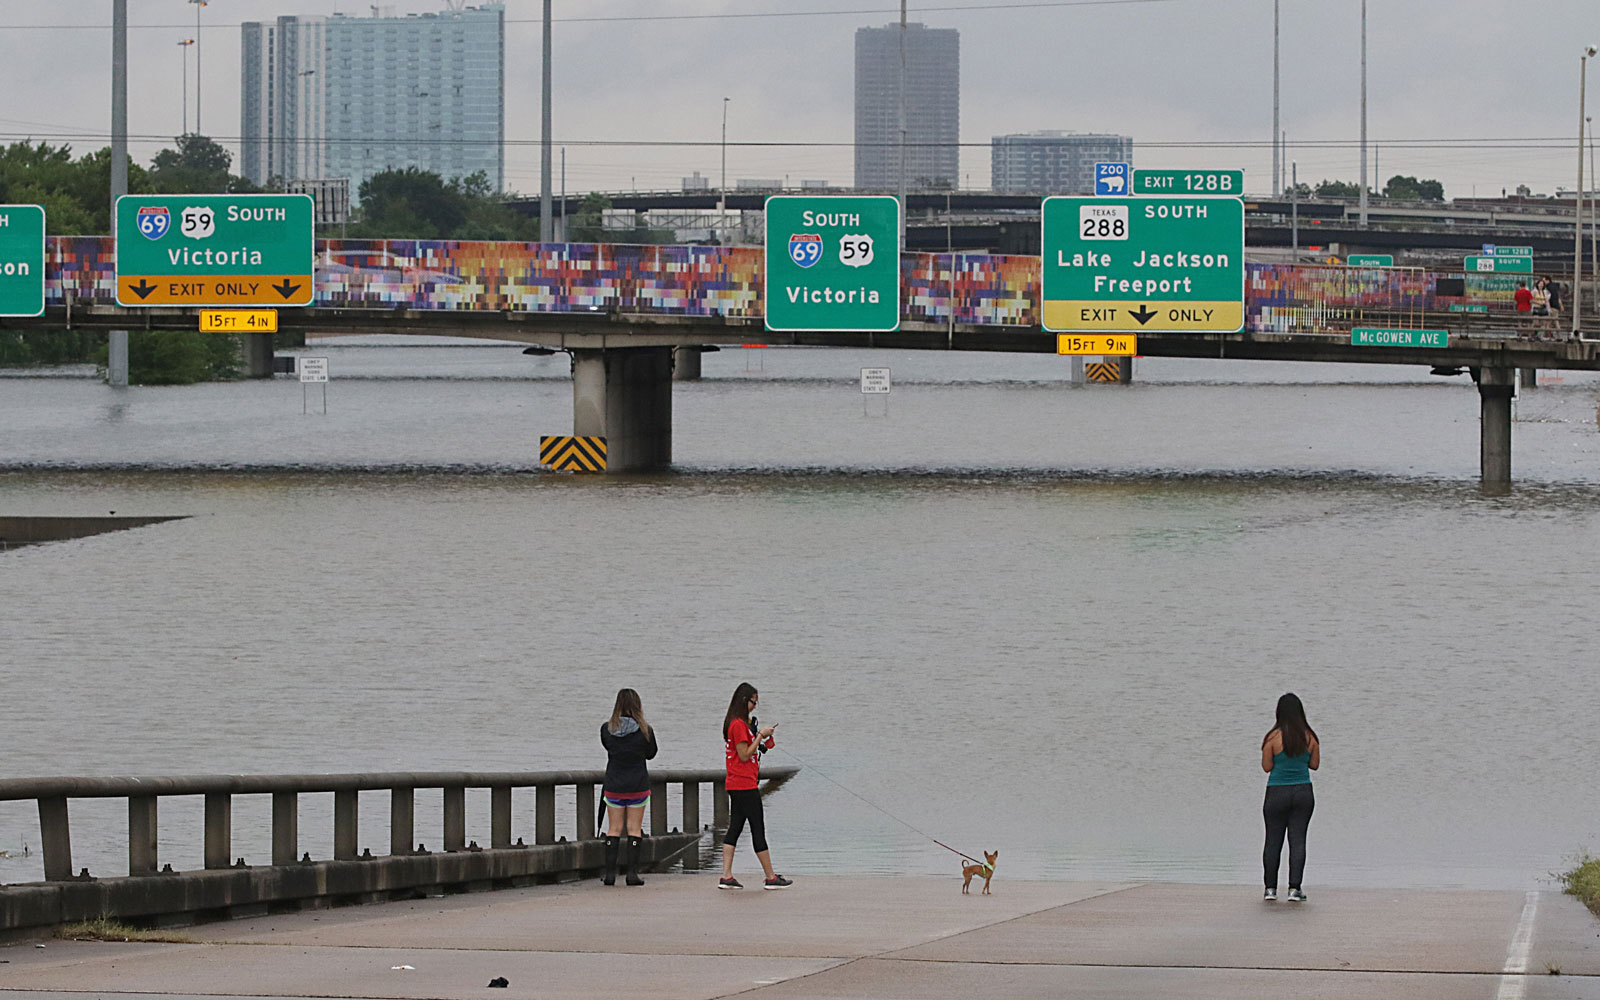 Houston Airports Are Resuming Limited Service After Hurricane Harvey